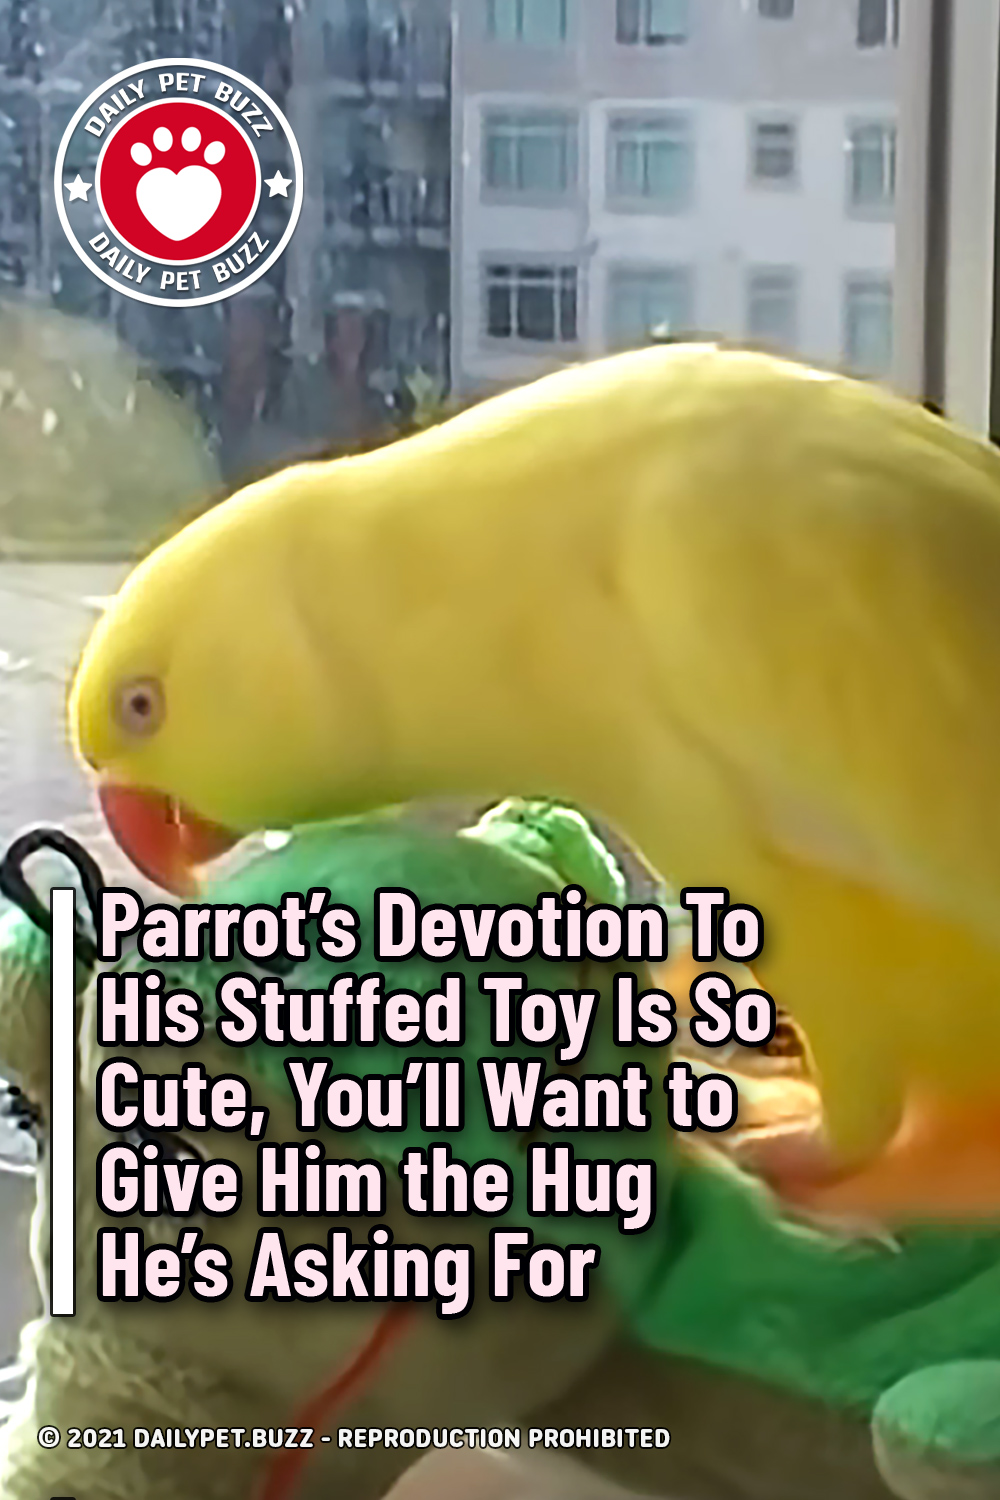 Parrot\'s Devotion To His Stuffed Toy Is So Cute, You\'ll Want to Give Him the Hug He's Asking For